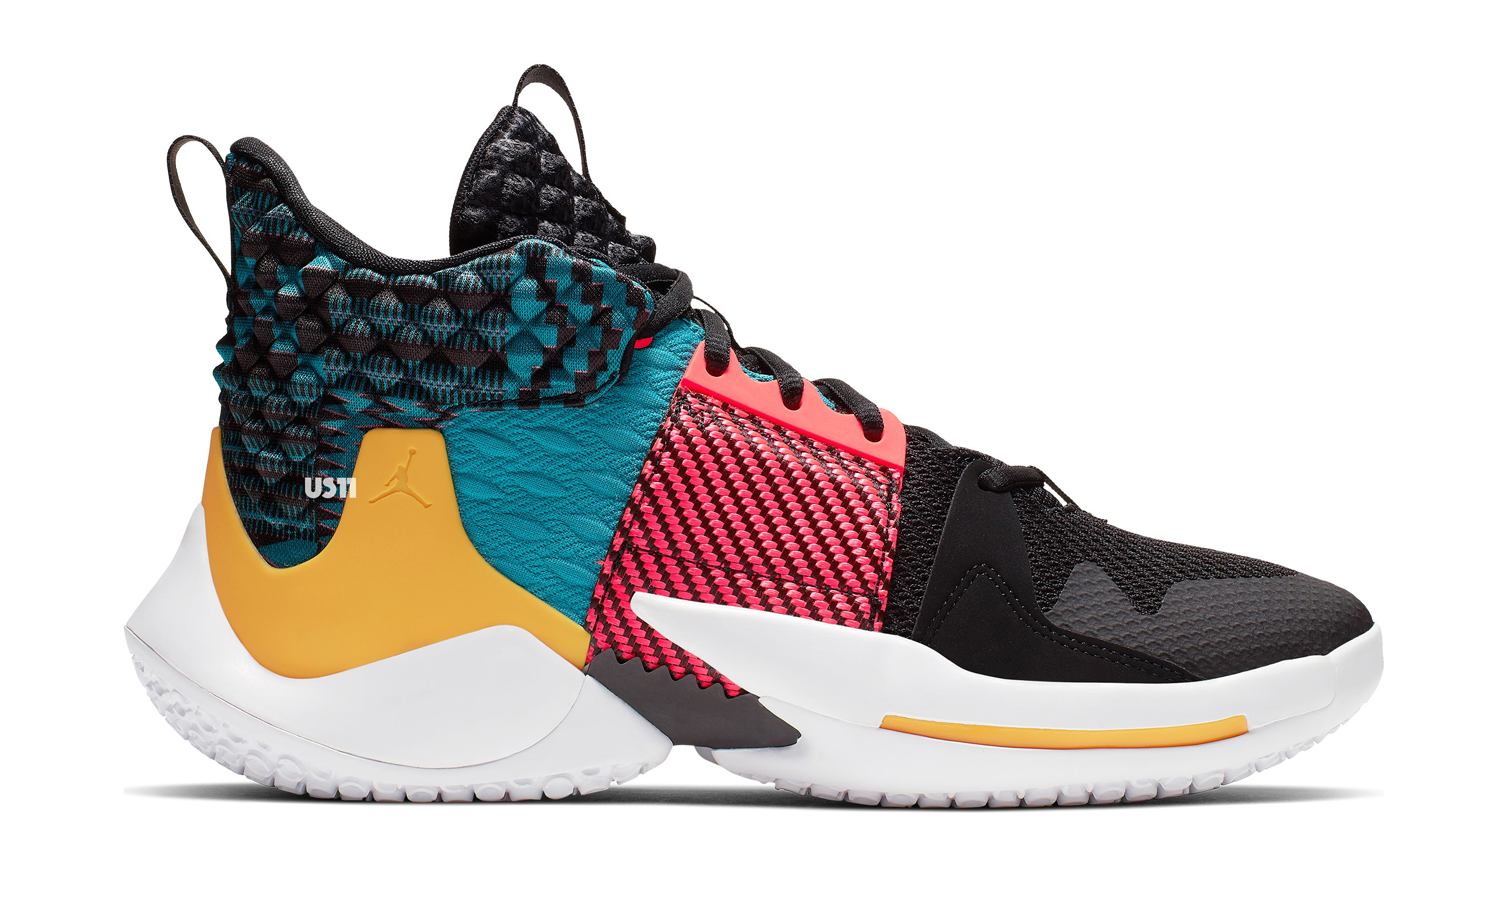 cdef023b252 Share your thoughts on the Jordan Why Not Zer0.2 below and stay tuned for  the official performance review coming soon.